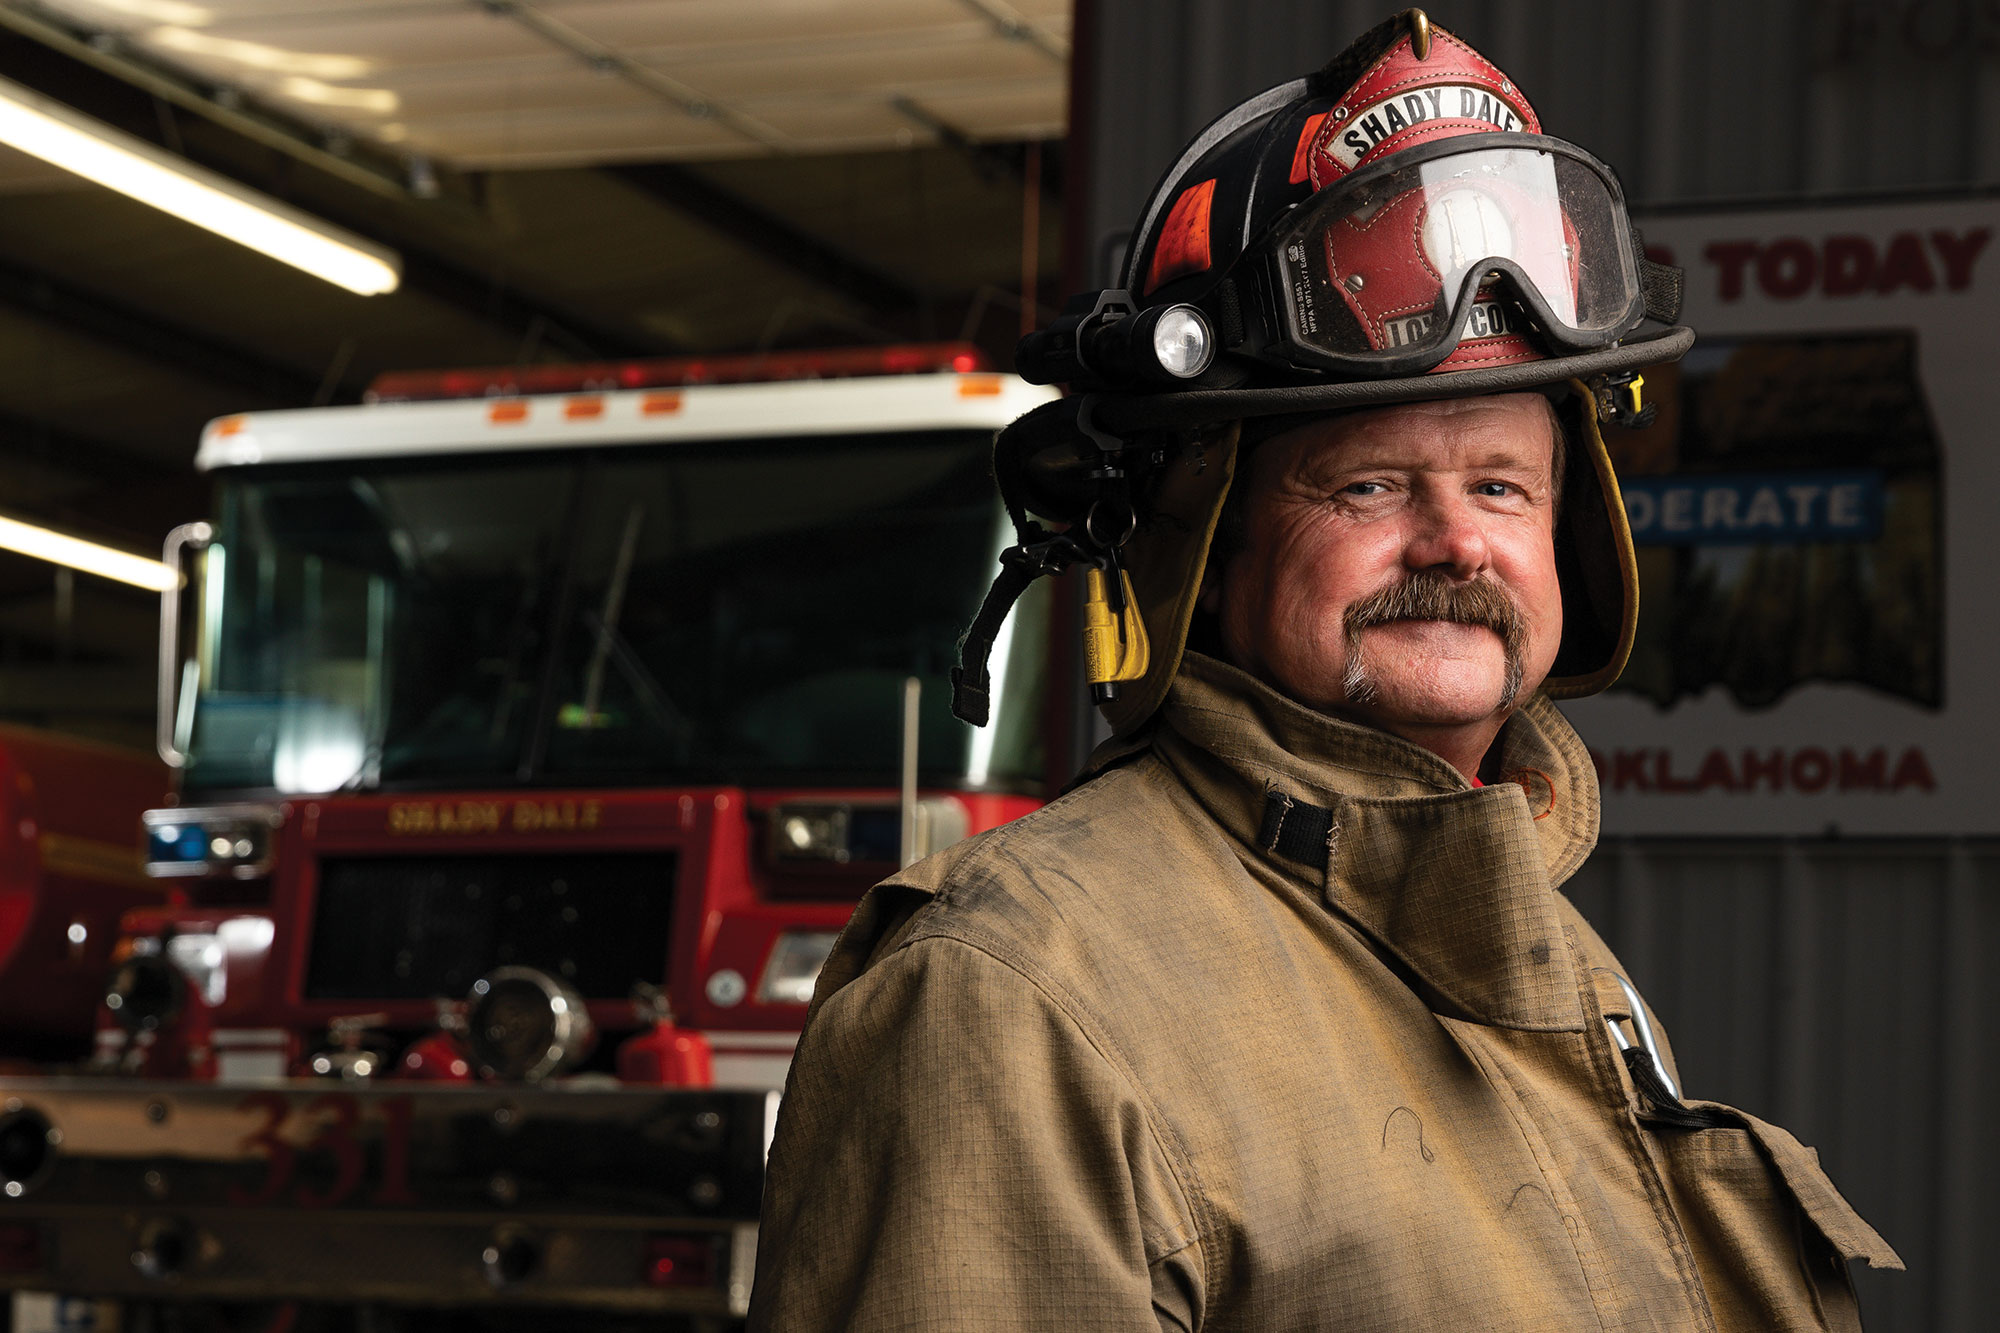 Tim Boatright, an agricultural equipment mechanic at the Noble Research Institute, serves as the captain of the Shady Dale Volunteer Fire Department in Love County, Oklahoma.